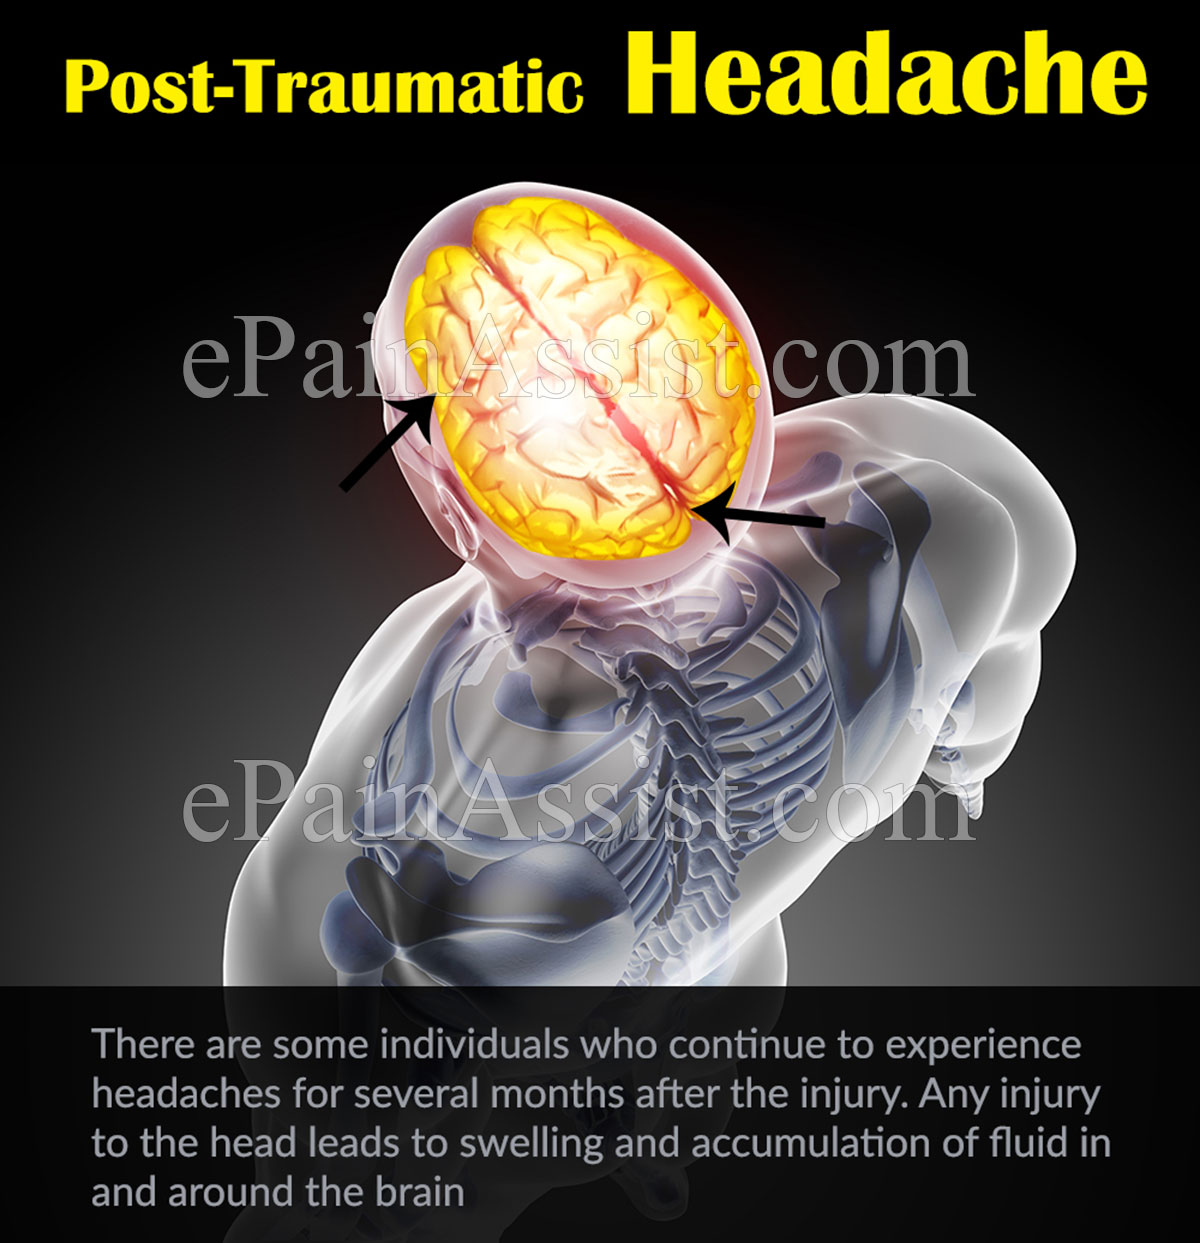 Post-Traumatic Headache: Causes, Symptoms, Treatment, Lifestyle Modifications